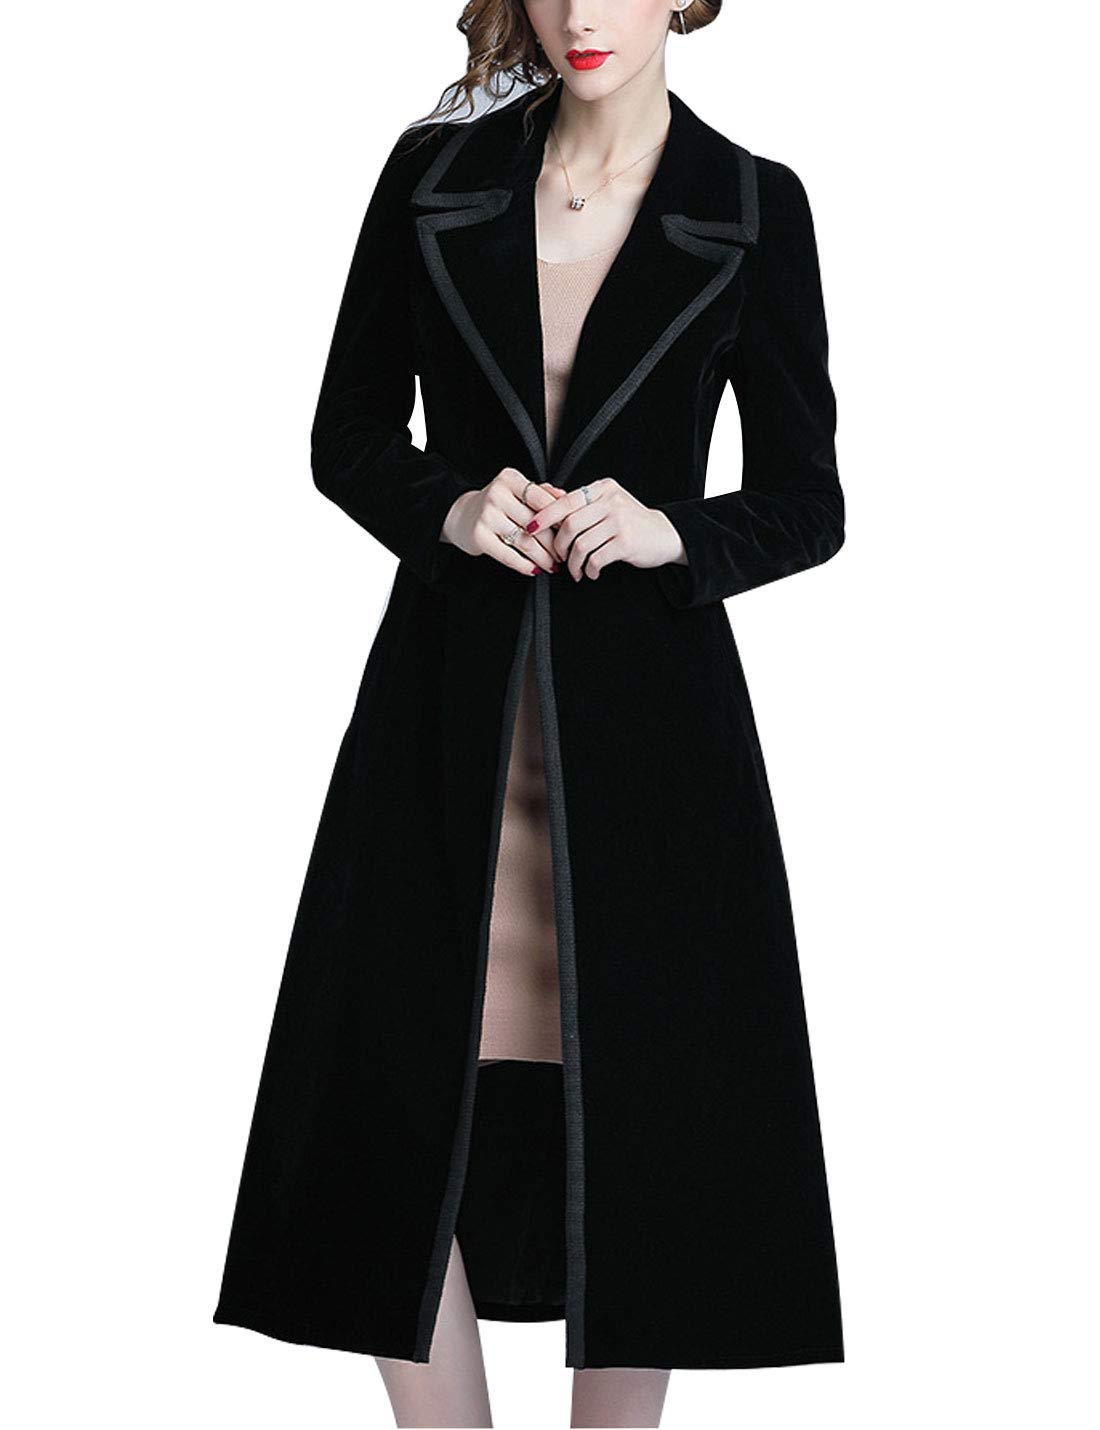 Omoone Women's Double Breasted Lapel Midi Long Vintage Velvet Trench Coat(0102-Black-M) by Omoone